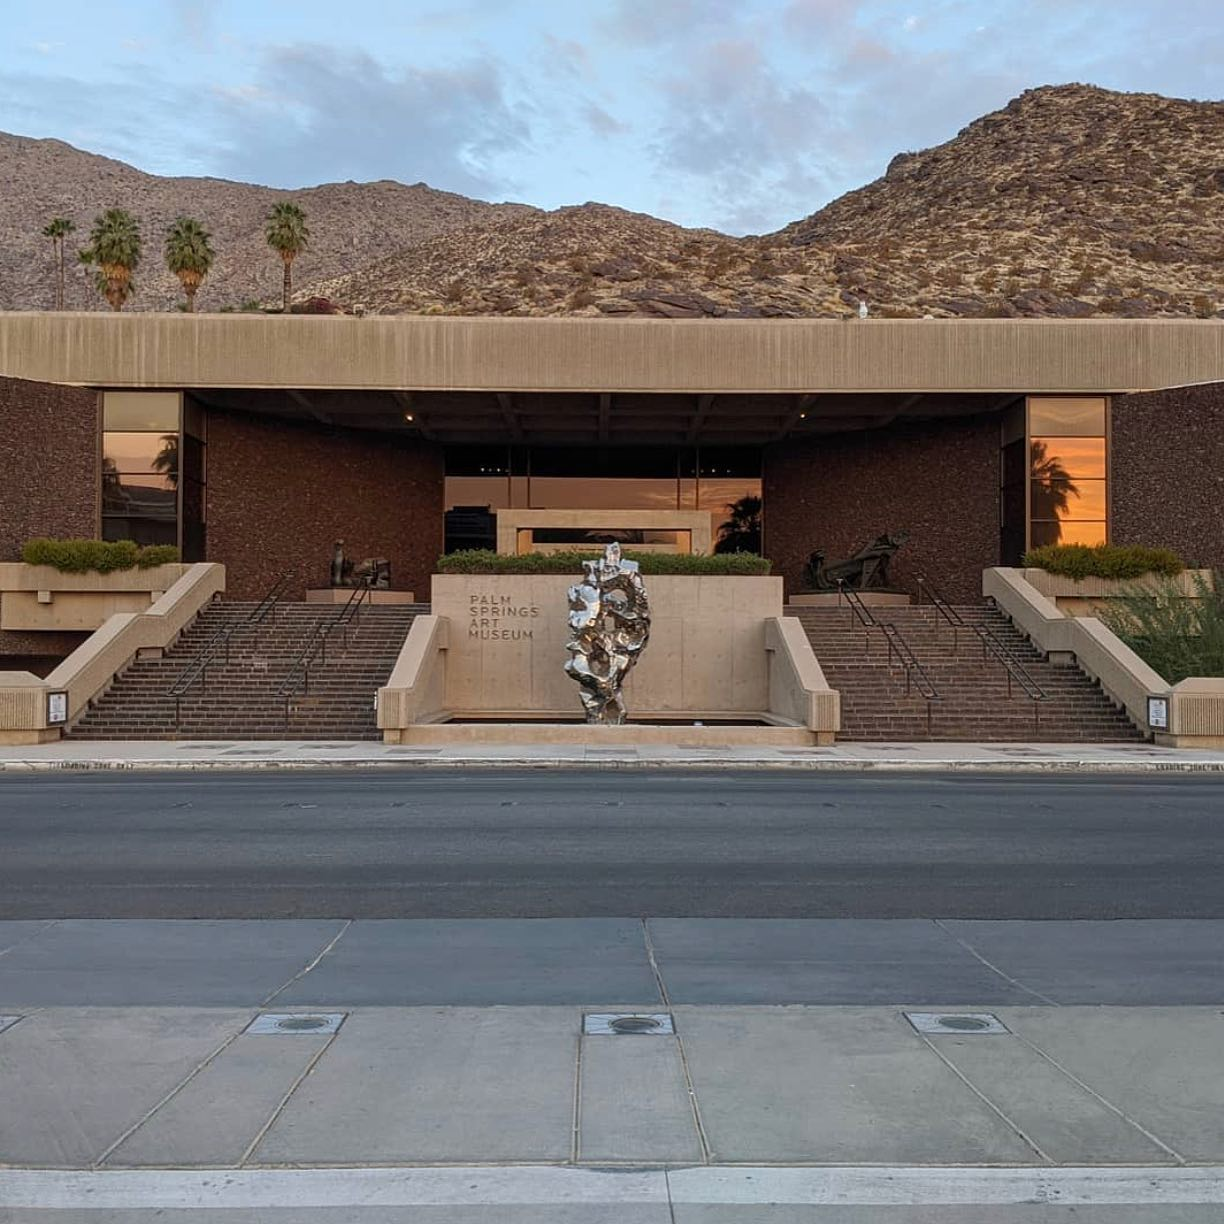 Palm Springs Art Museum to Reopen April 1